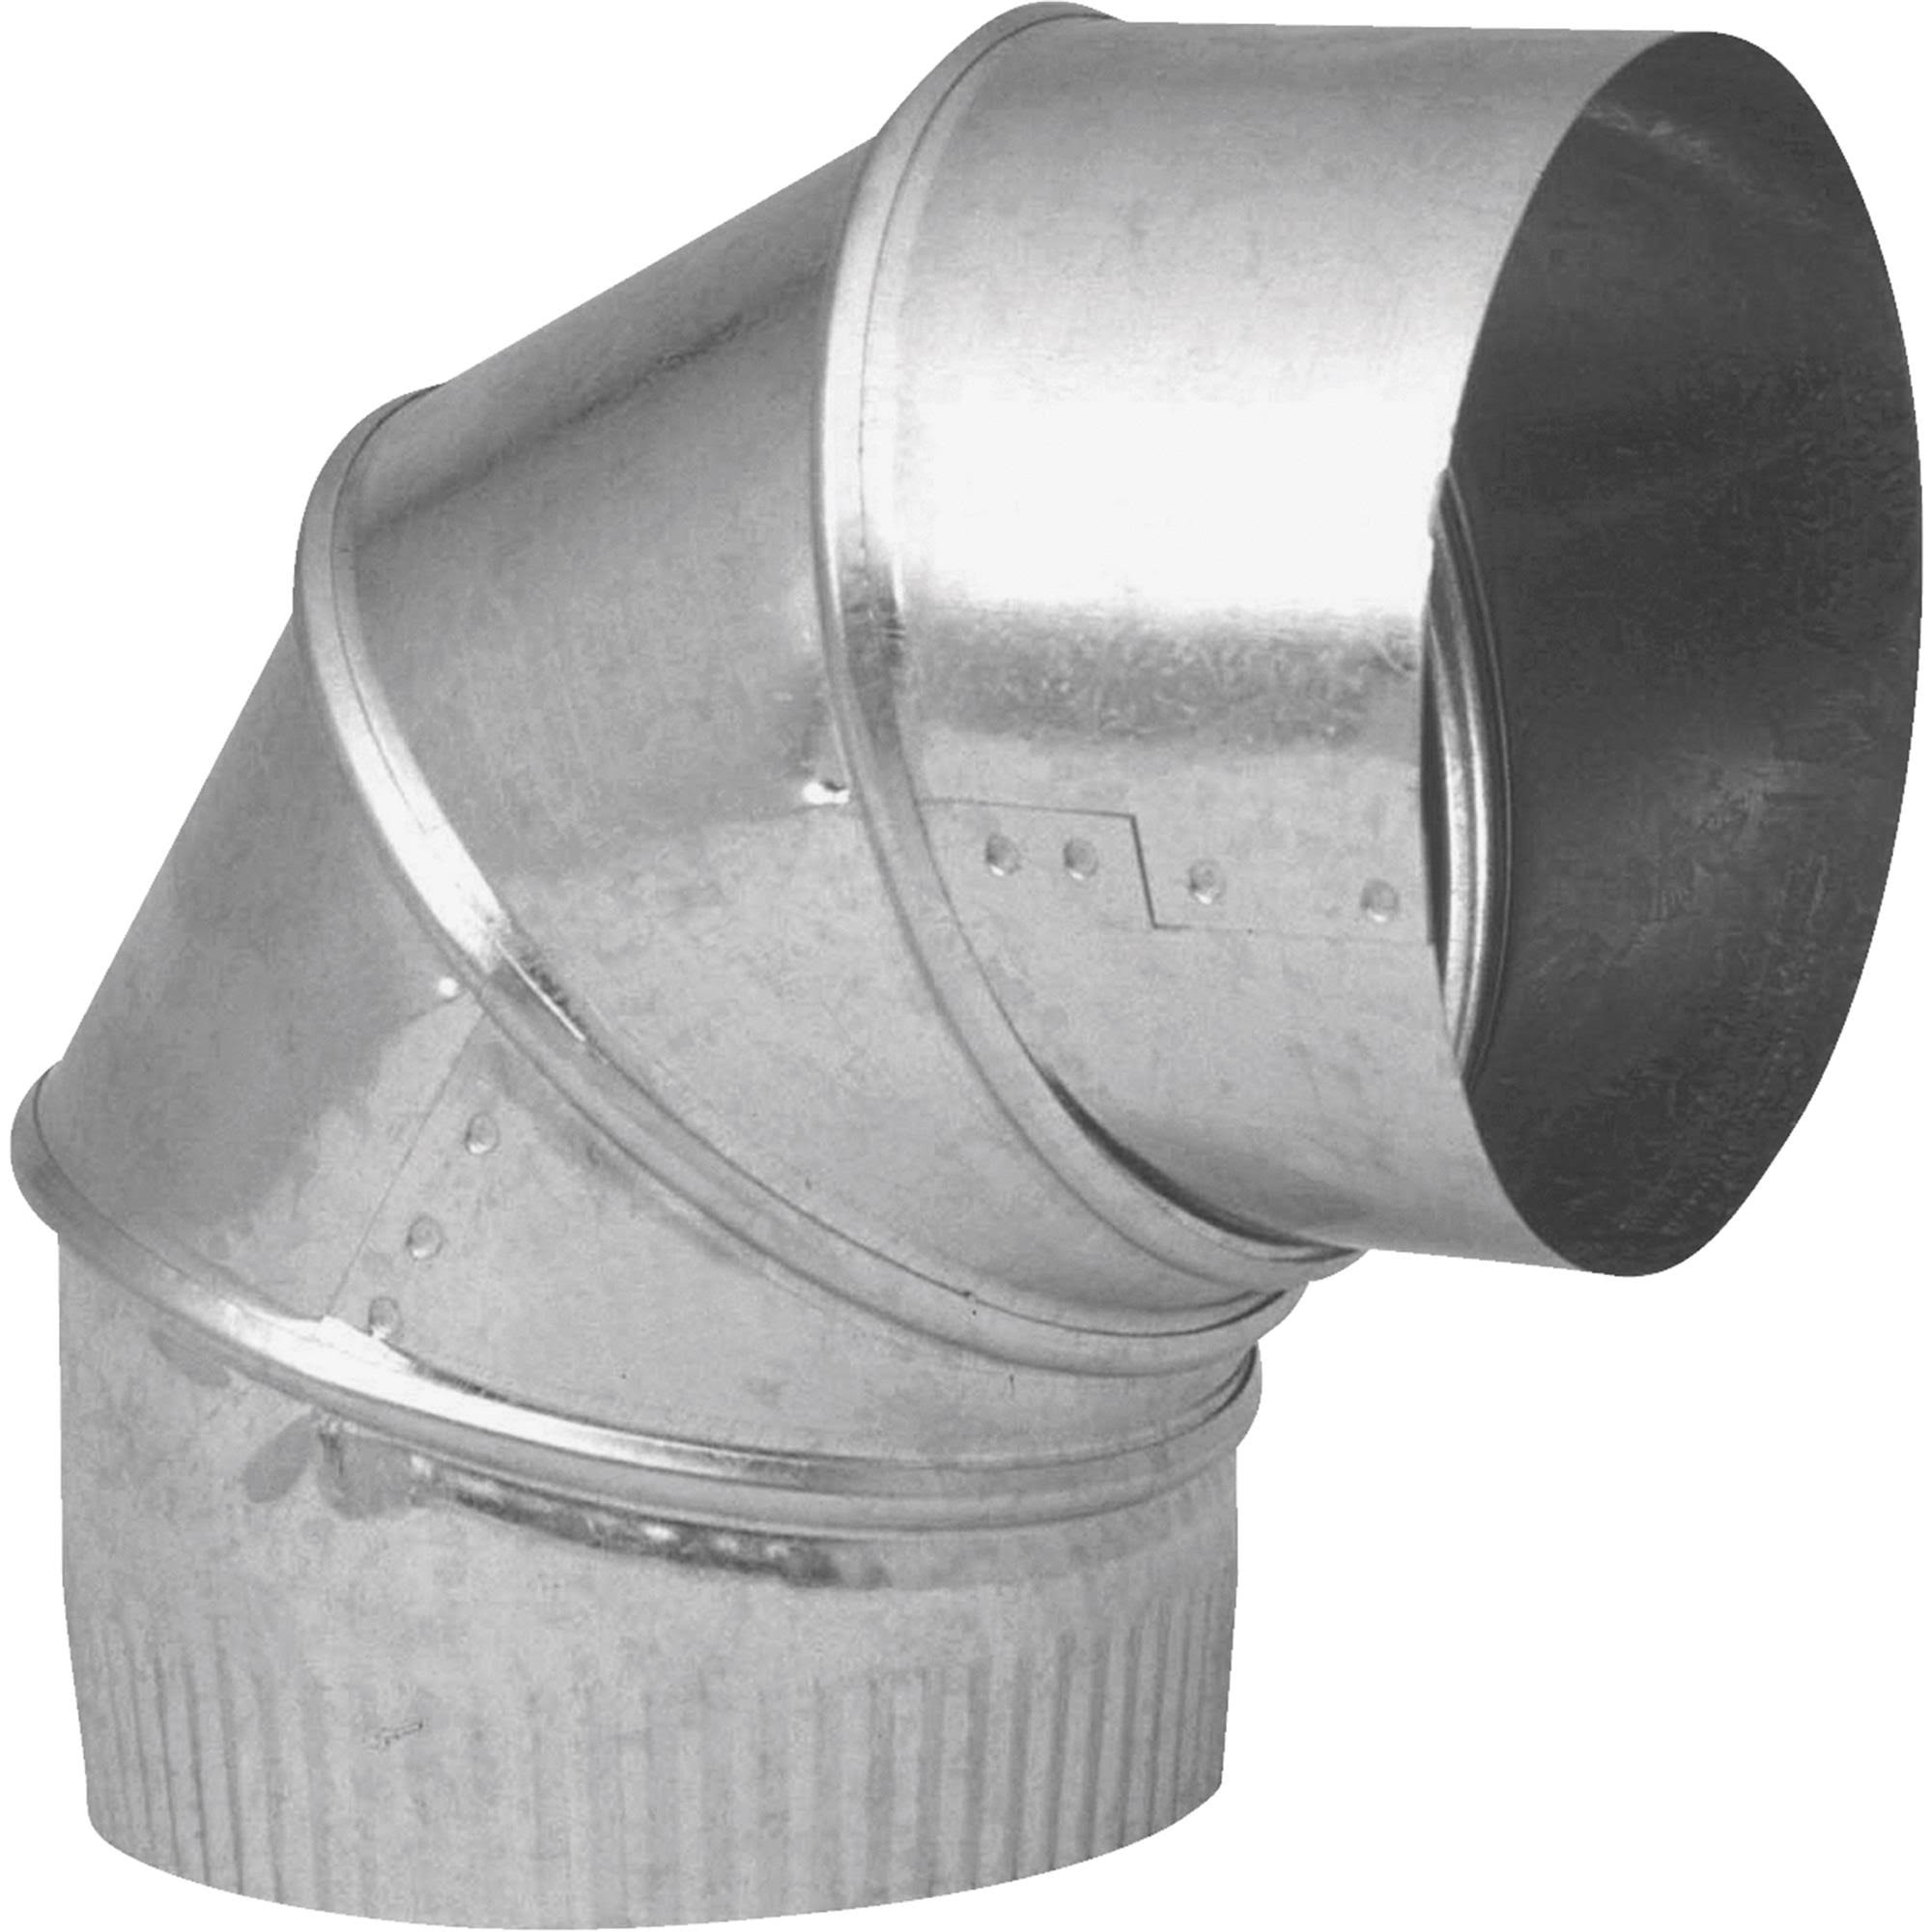 Imperial Manufacturing Elbow Pipe